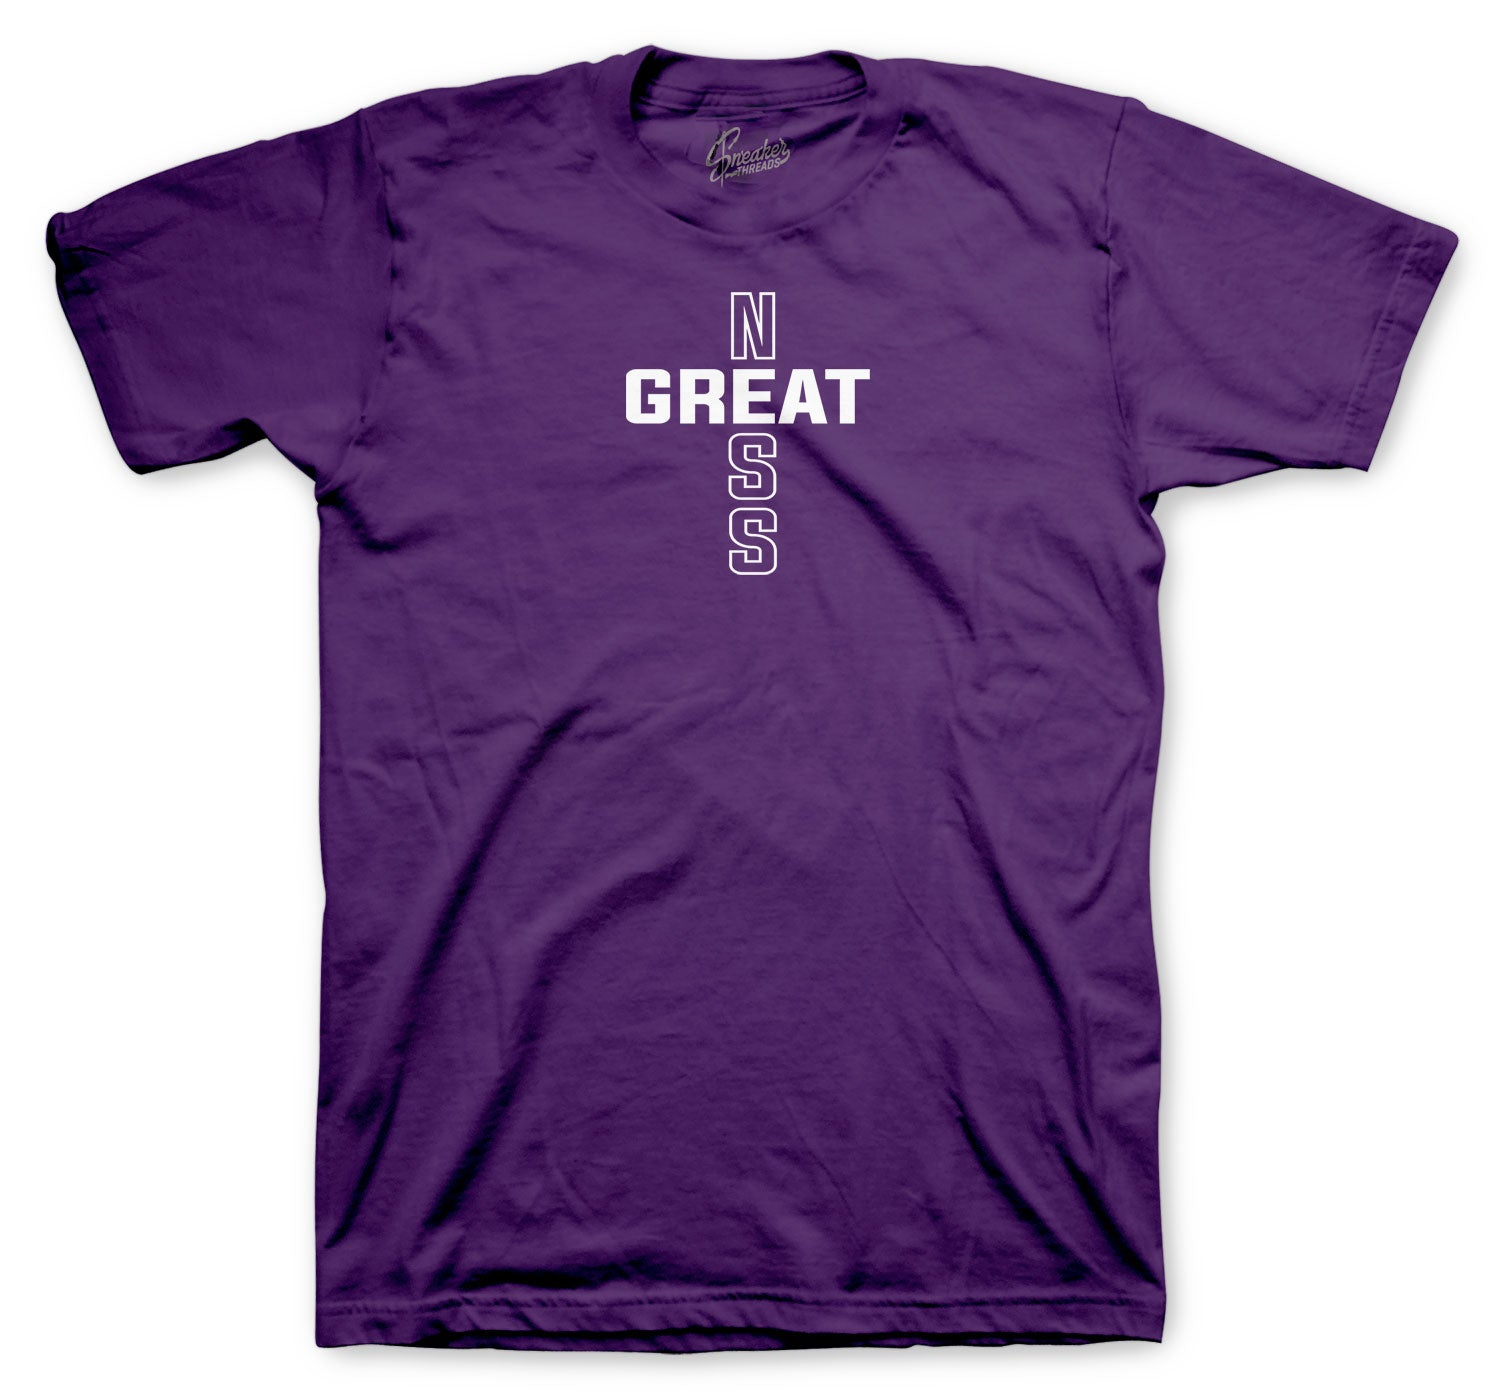 Shirt collection for men designed perfectly to match the Jordan purple court 1 sneakers